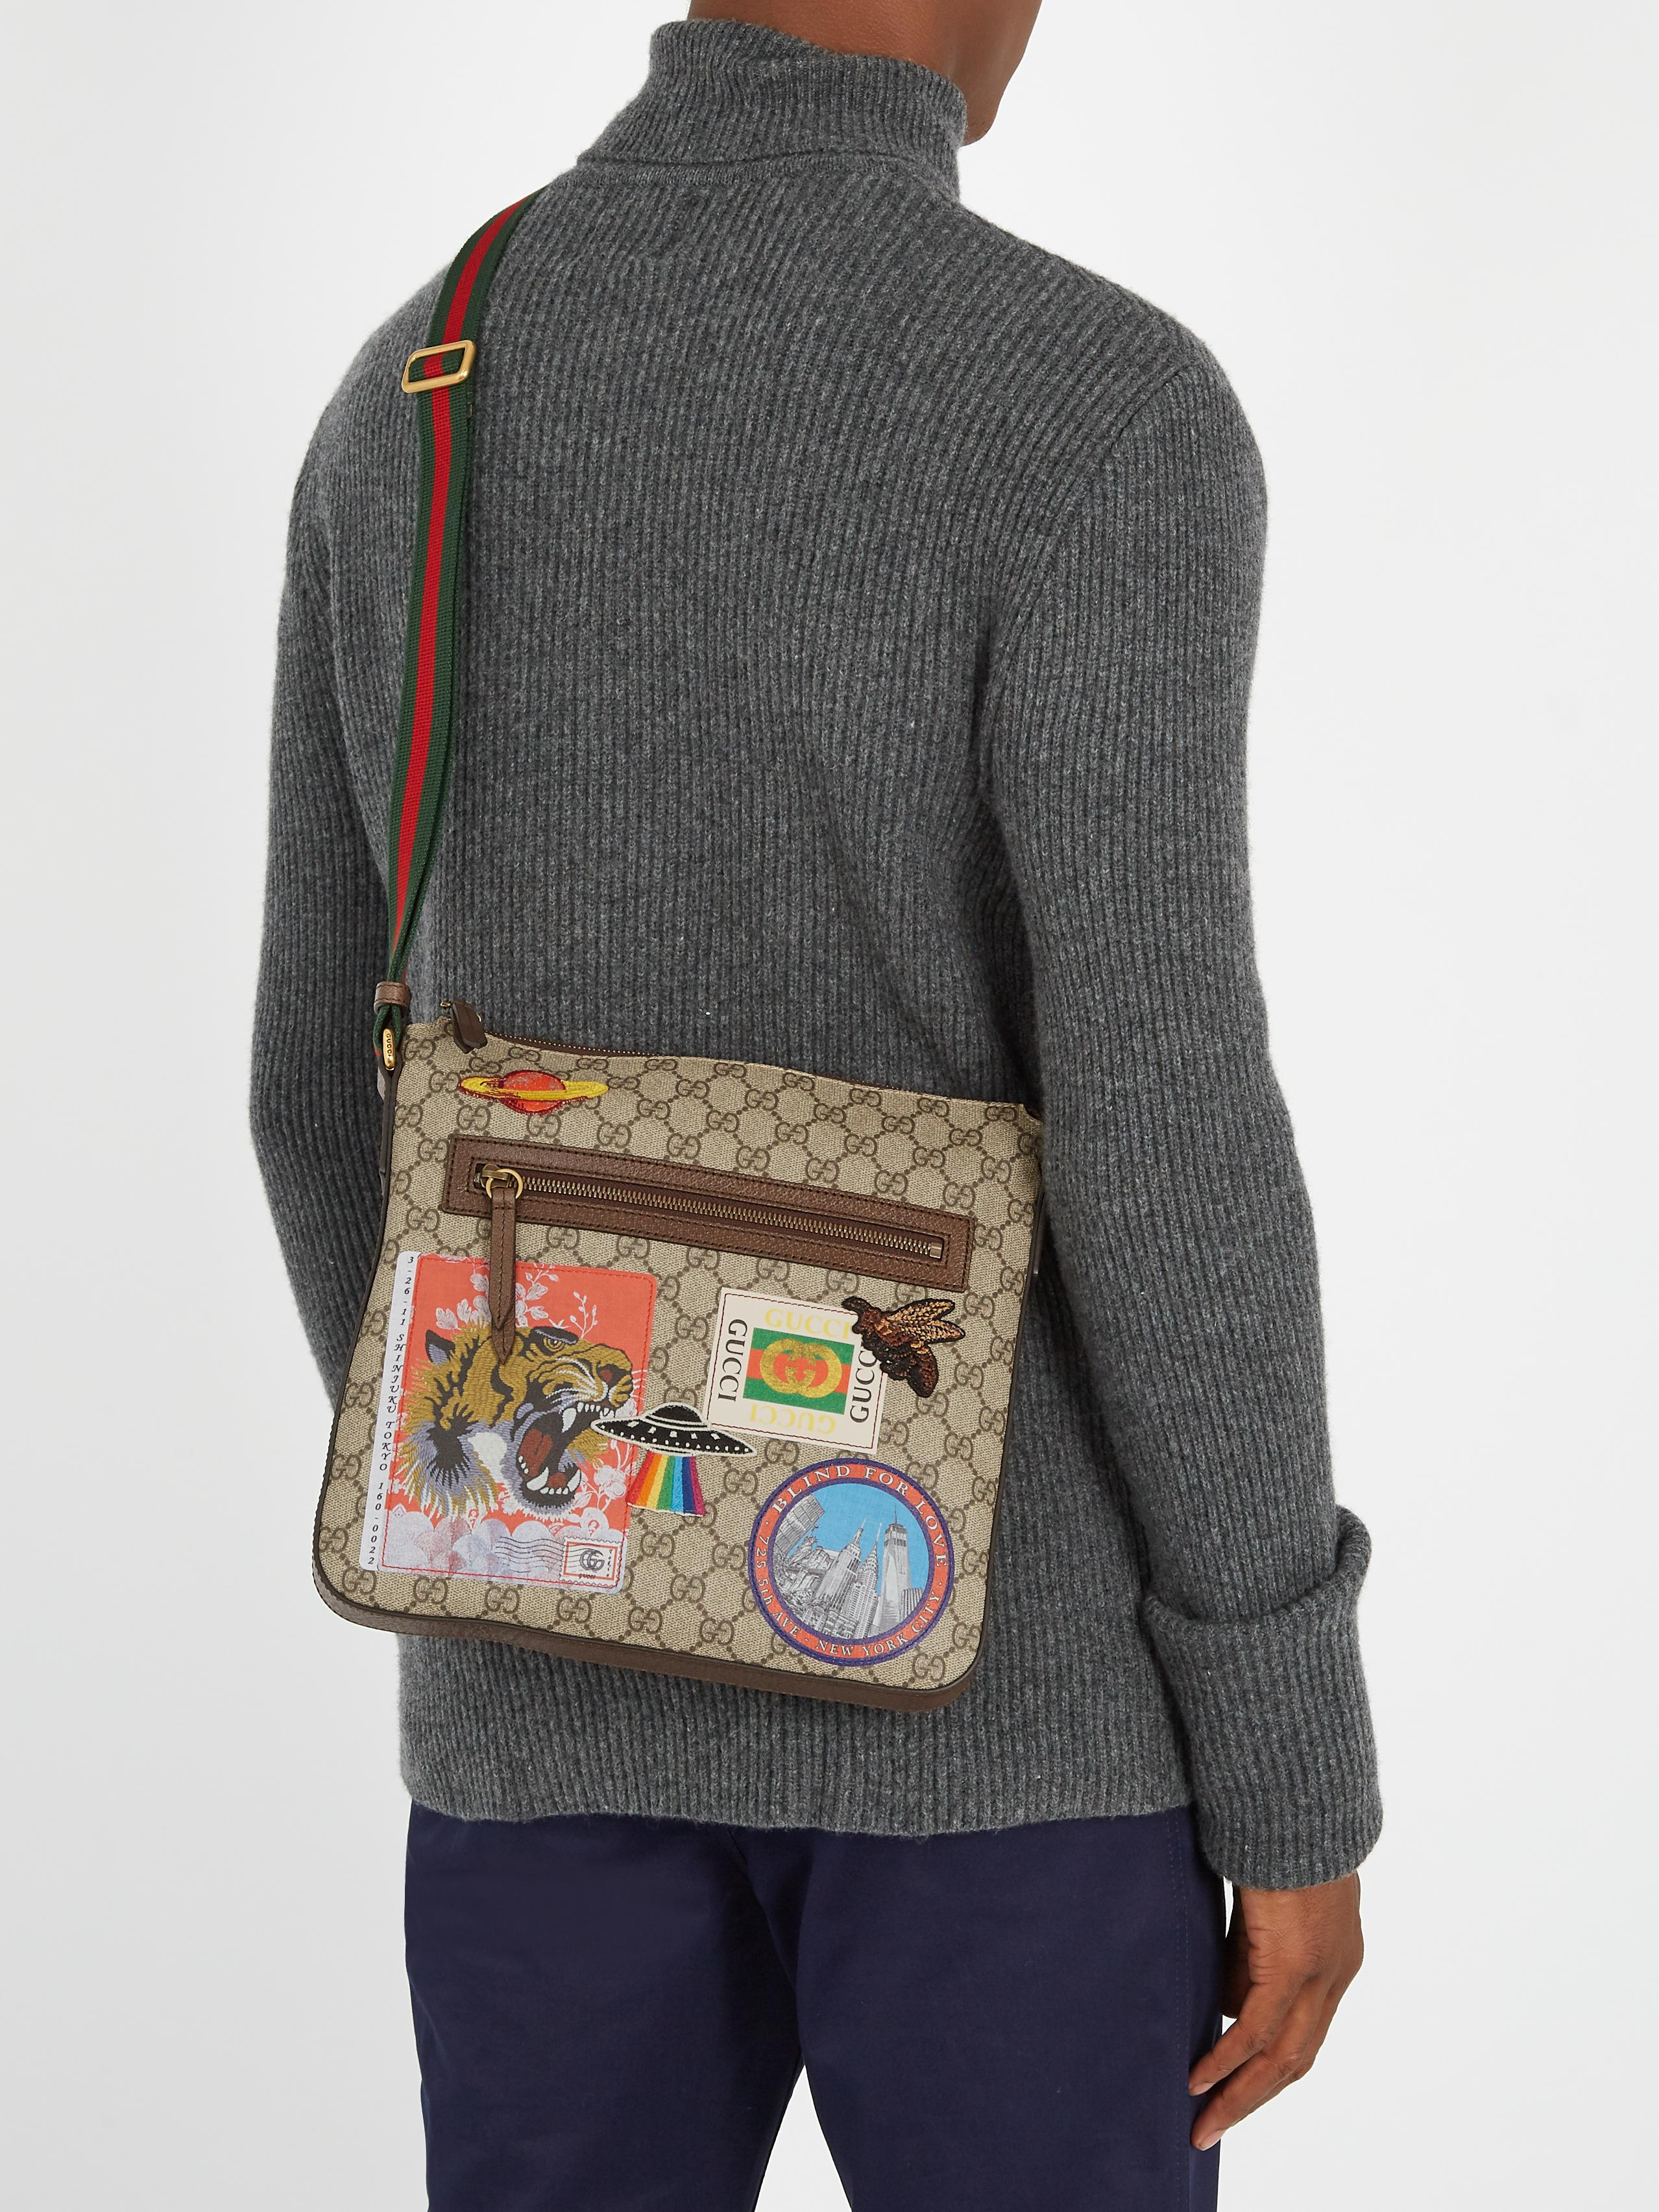 aaa8b1adc7d Lyst - Gucci Courrier Gg Supreme Messenger Bag in Brown for Men